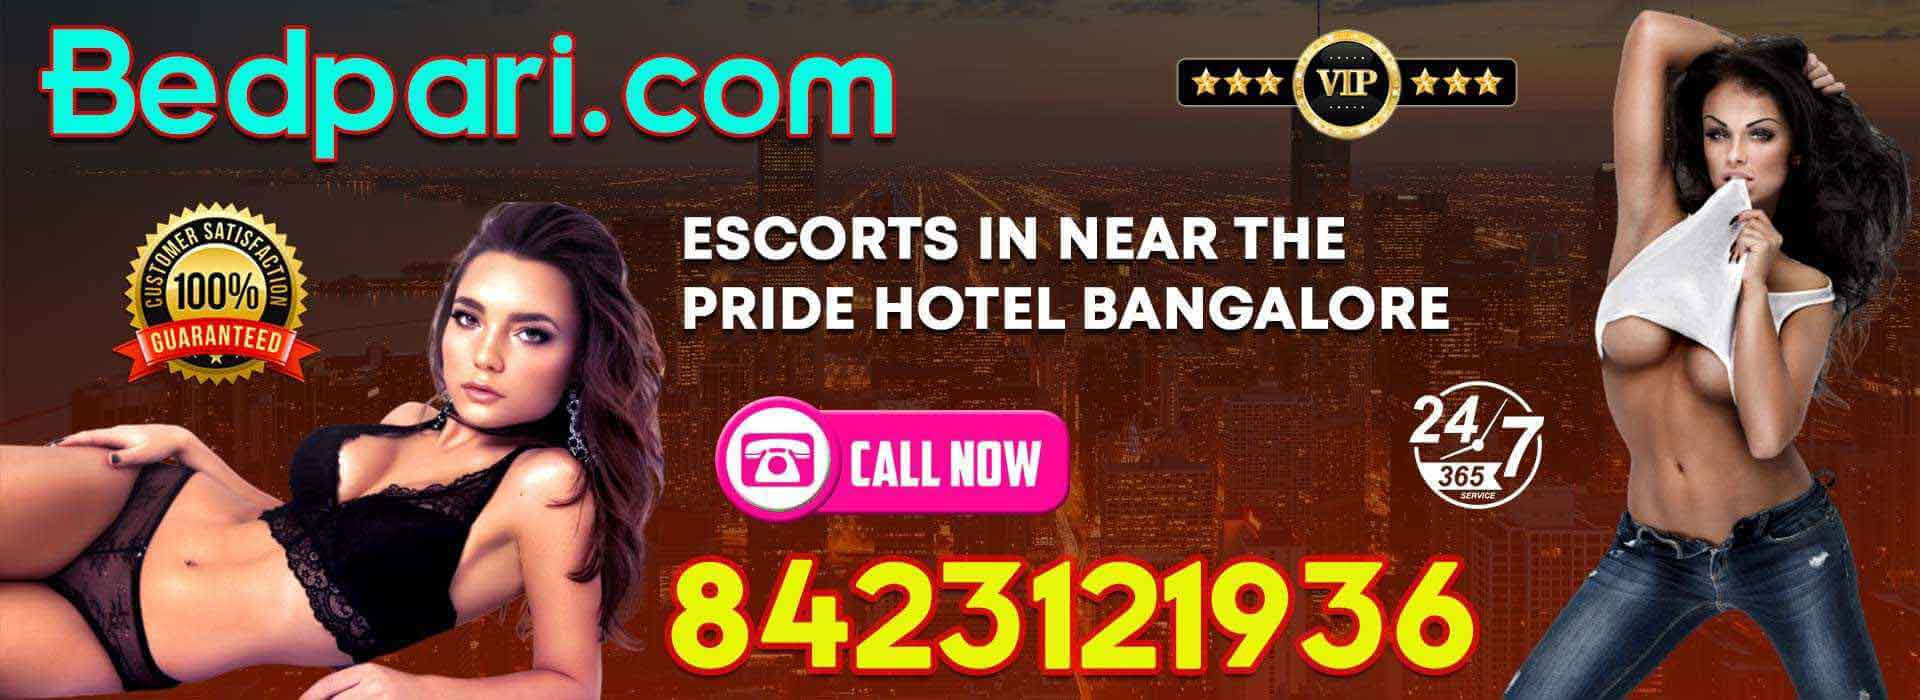 escorts in near the Pride Hotel Bangalore